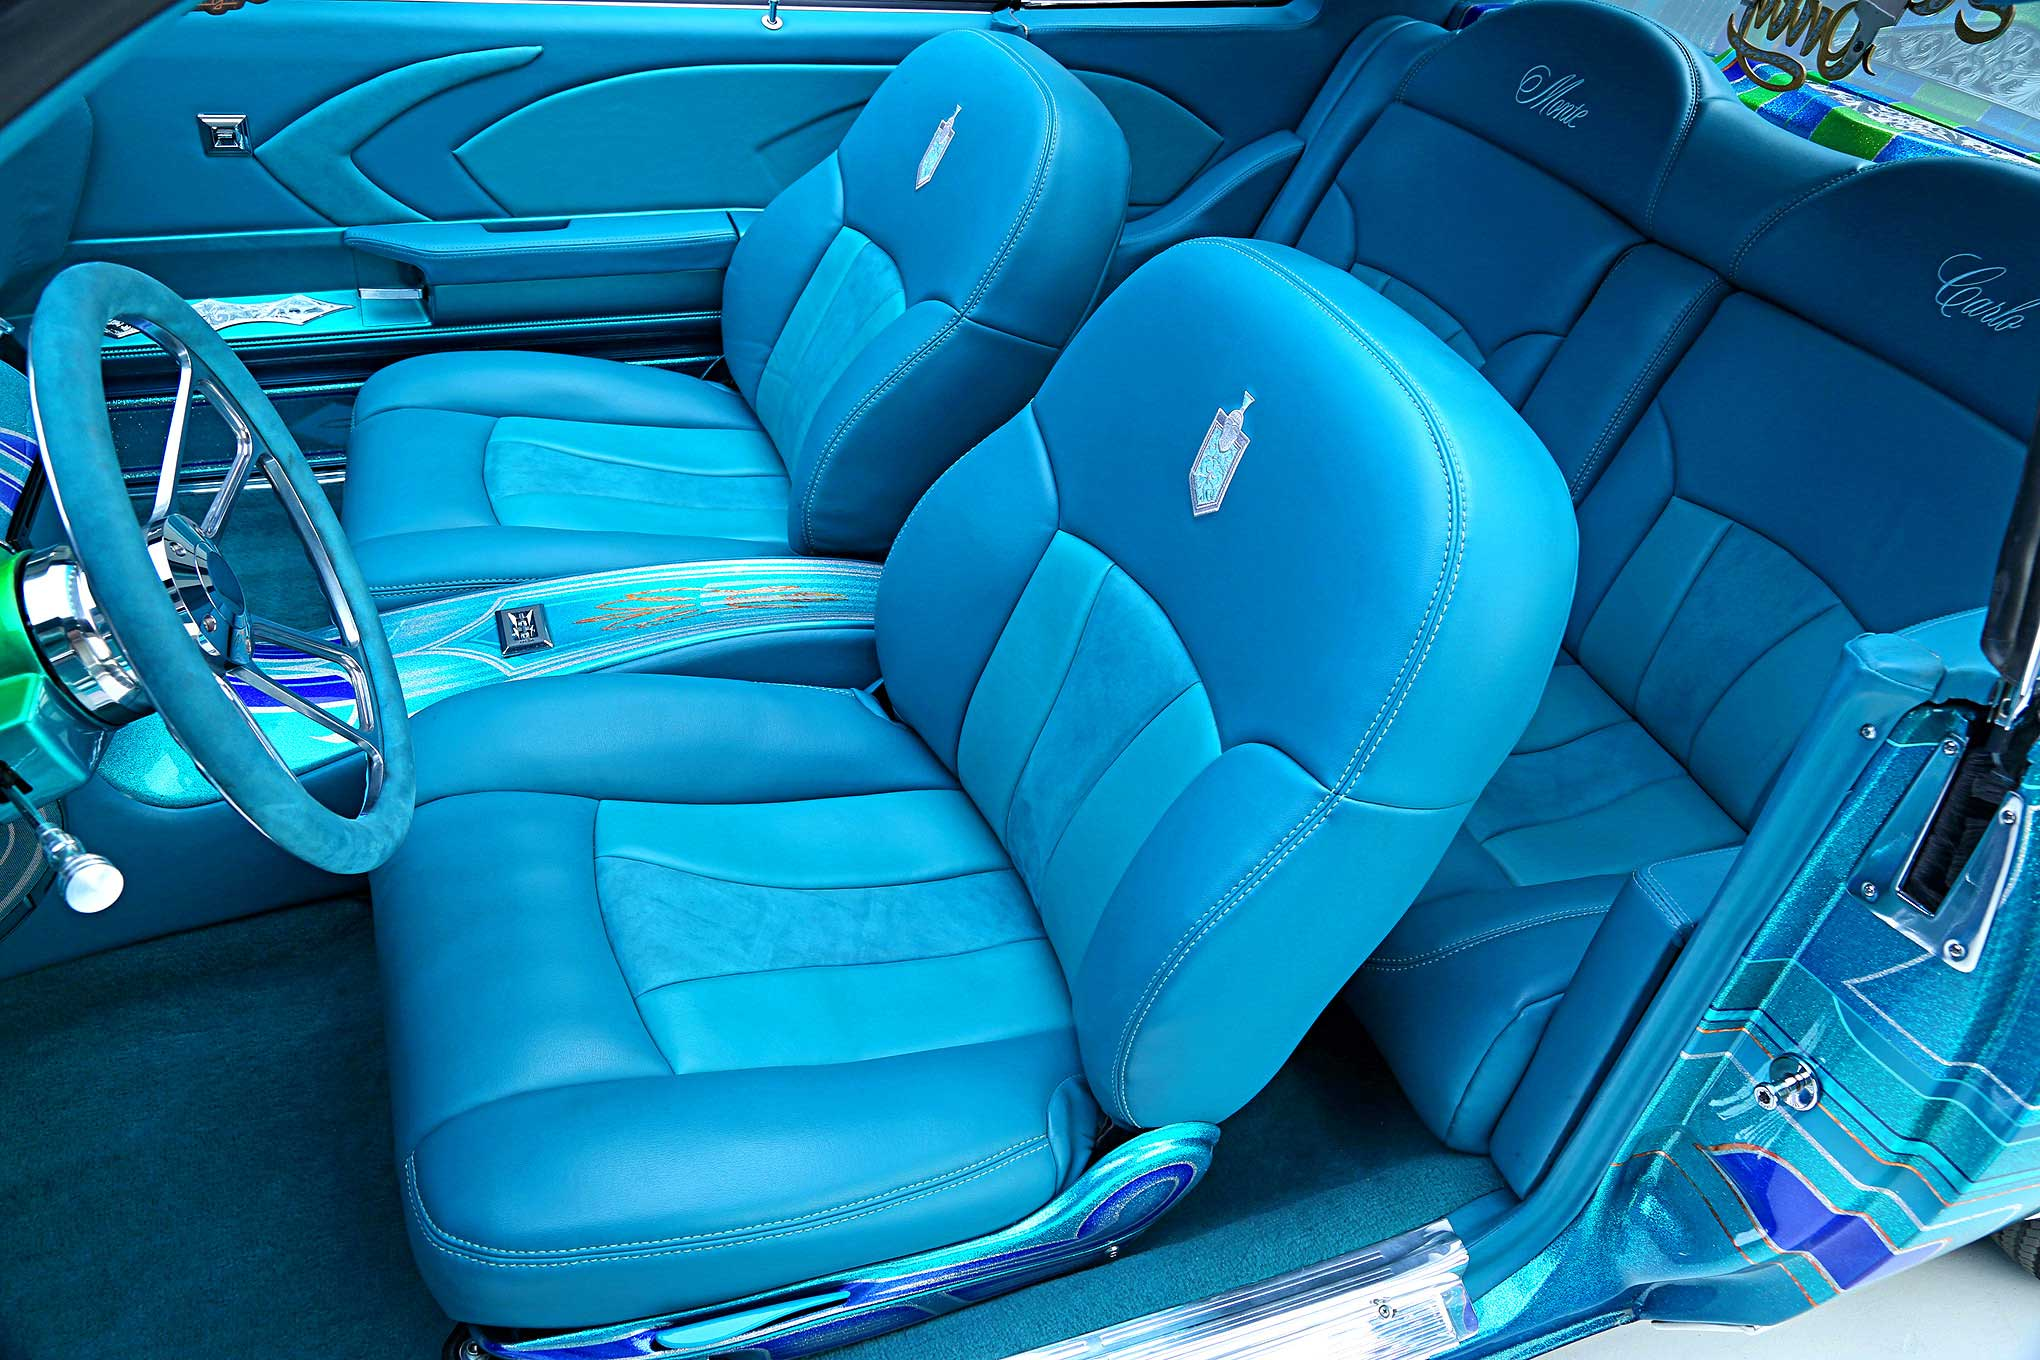 1979 Chevrolet Monte Carlo Teal Suede And Leather Front Seats - Lowrider